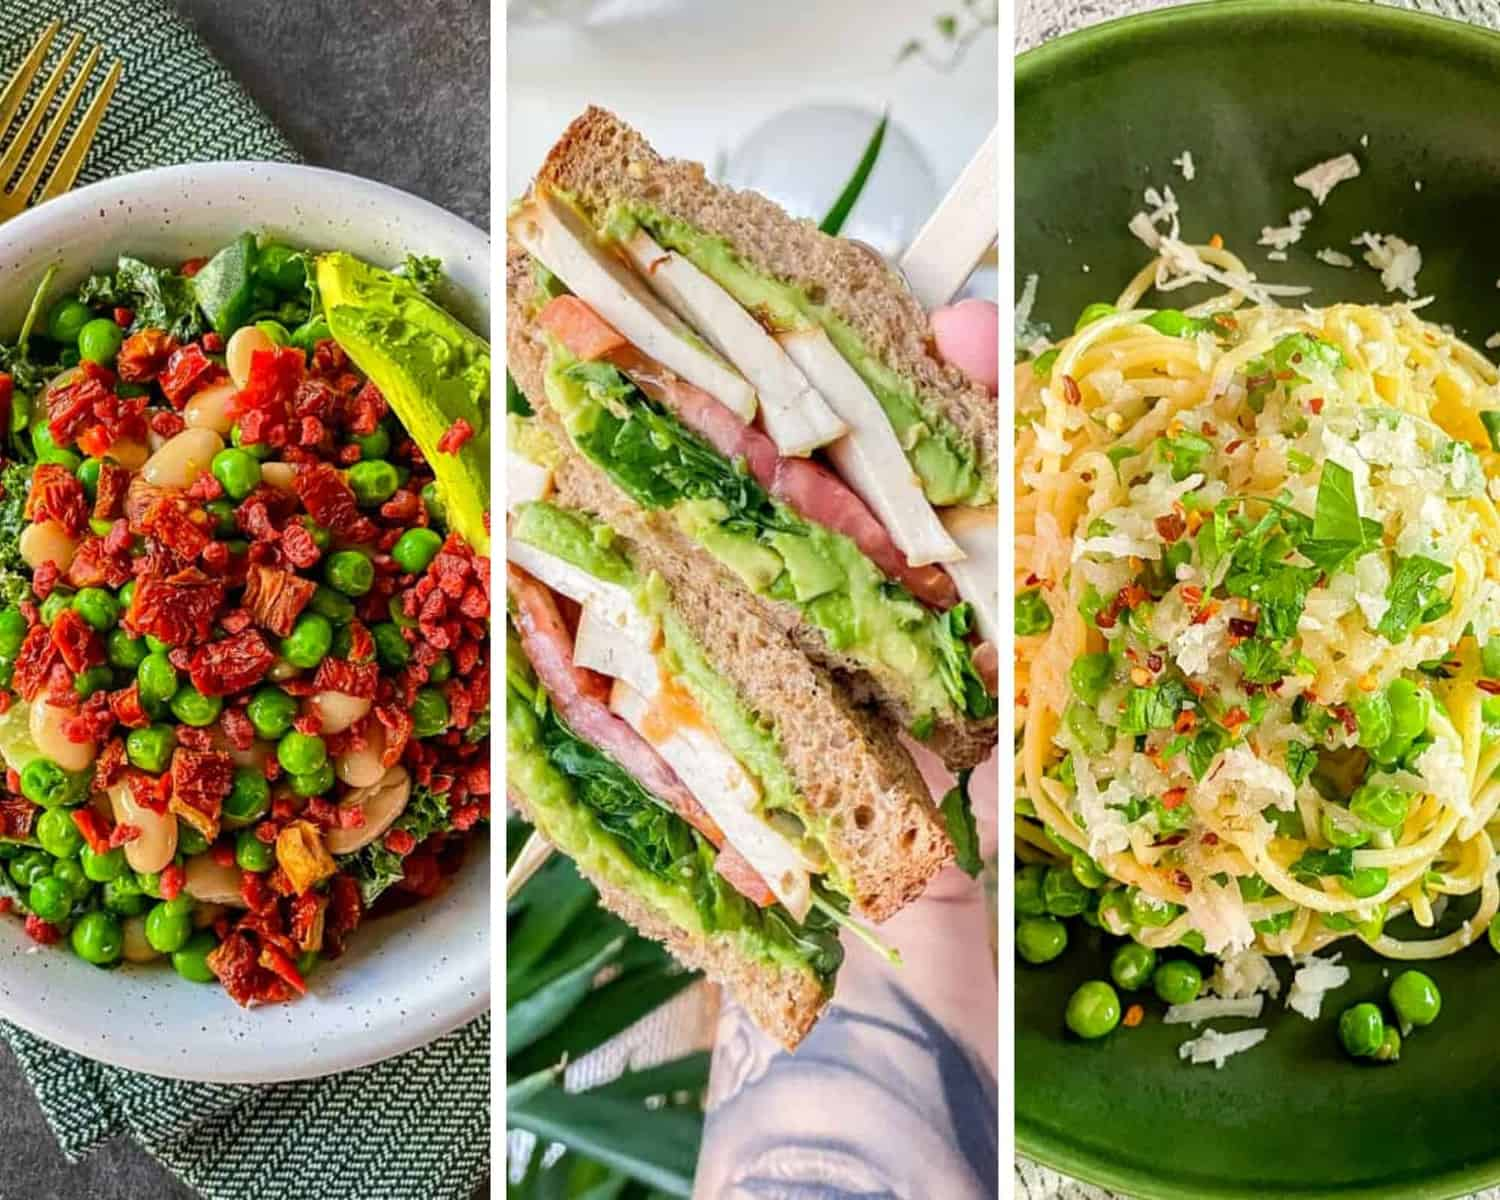 Single Vegan Meals For One (Breakfast, Lunch & Dinner)